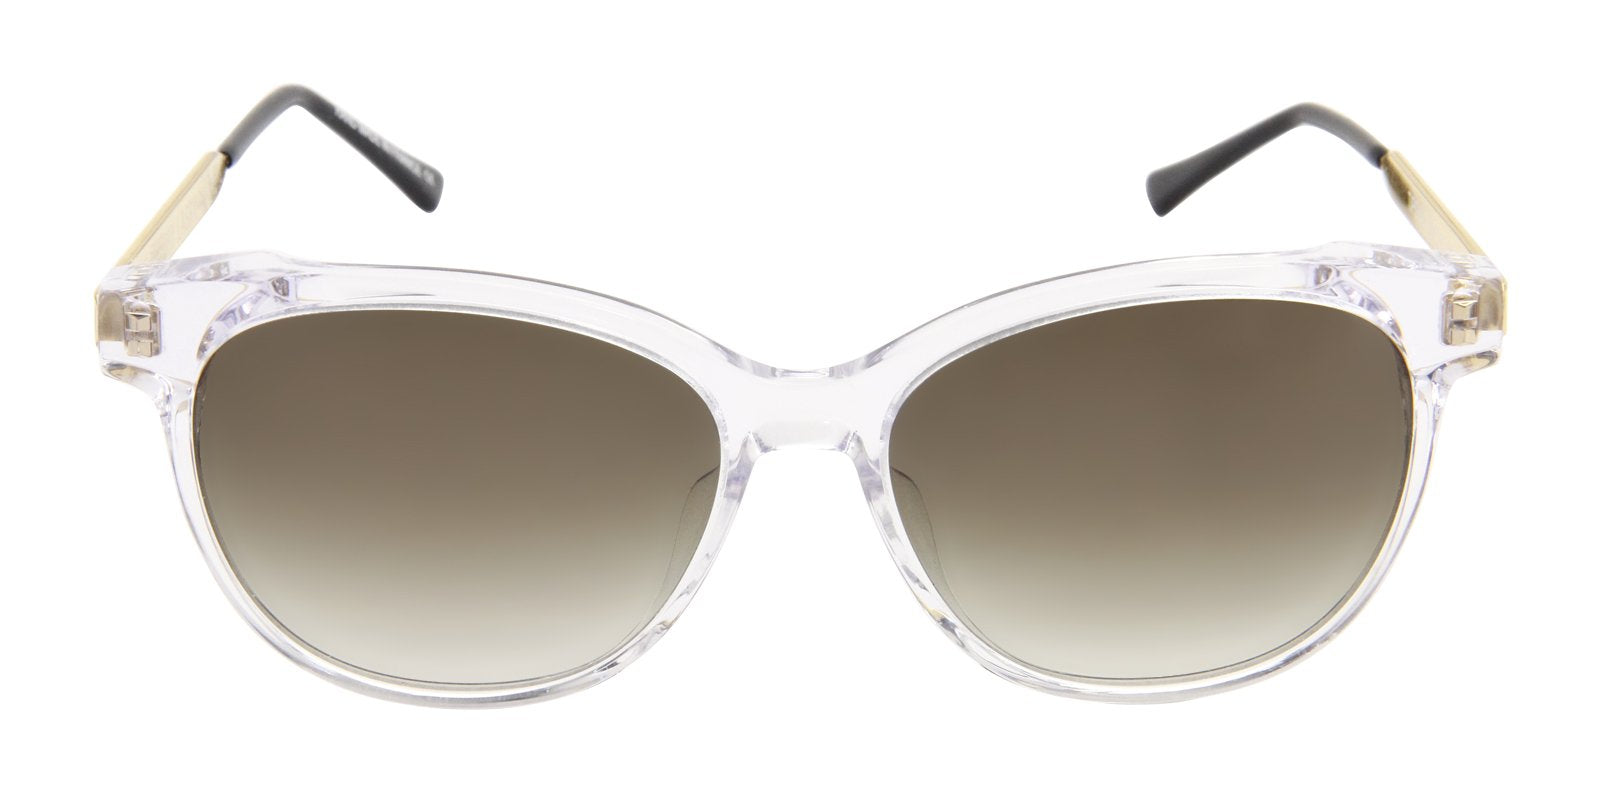 Thierry Lasry - Tipsy Clear Oval Women Sunglasses - 56mm-Sunglasses-Designer Eyes